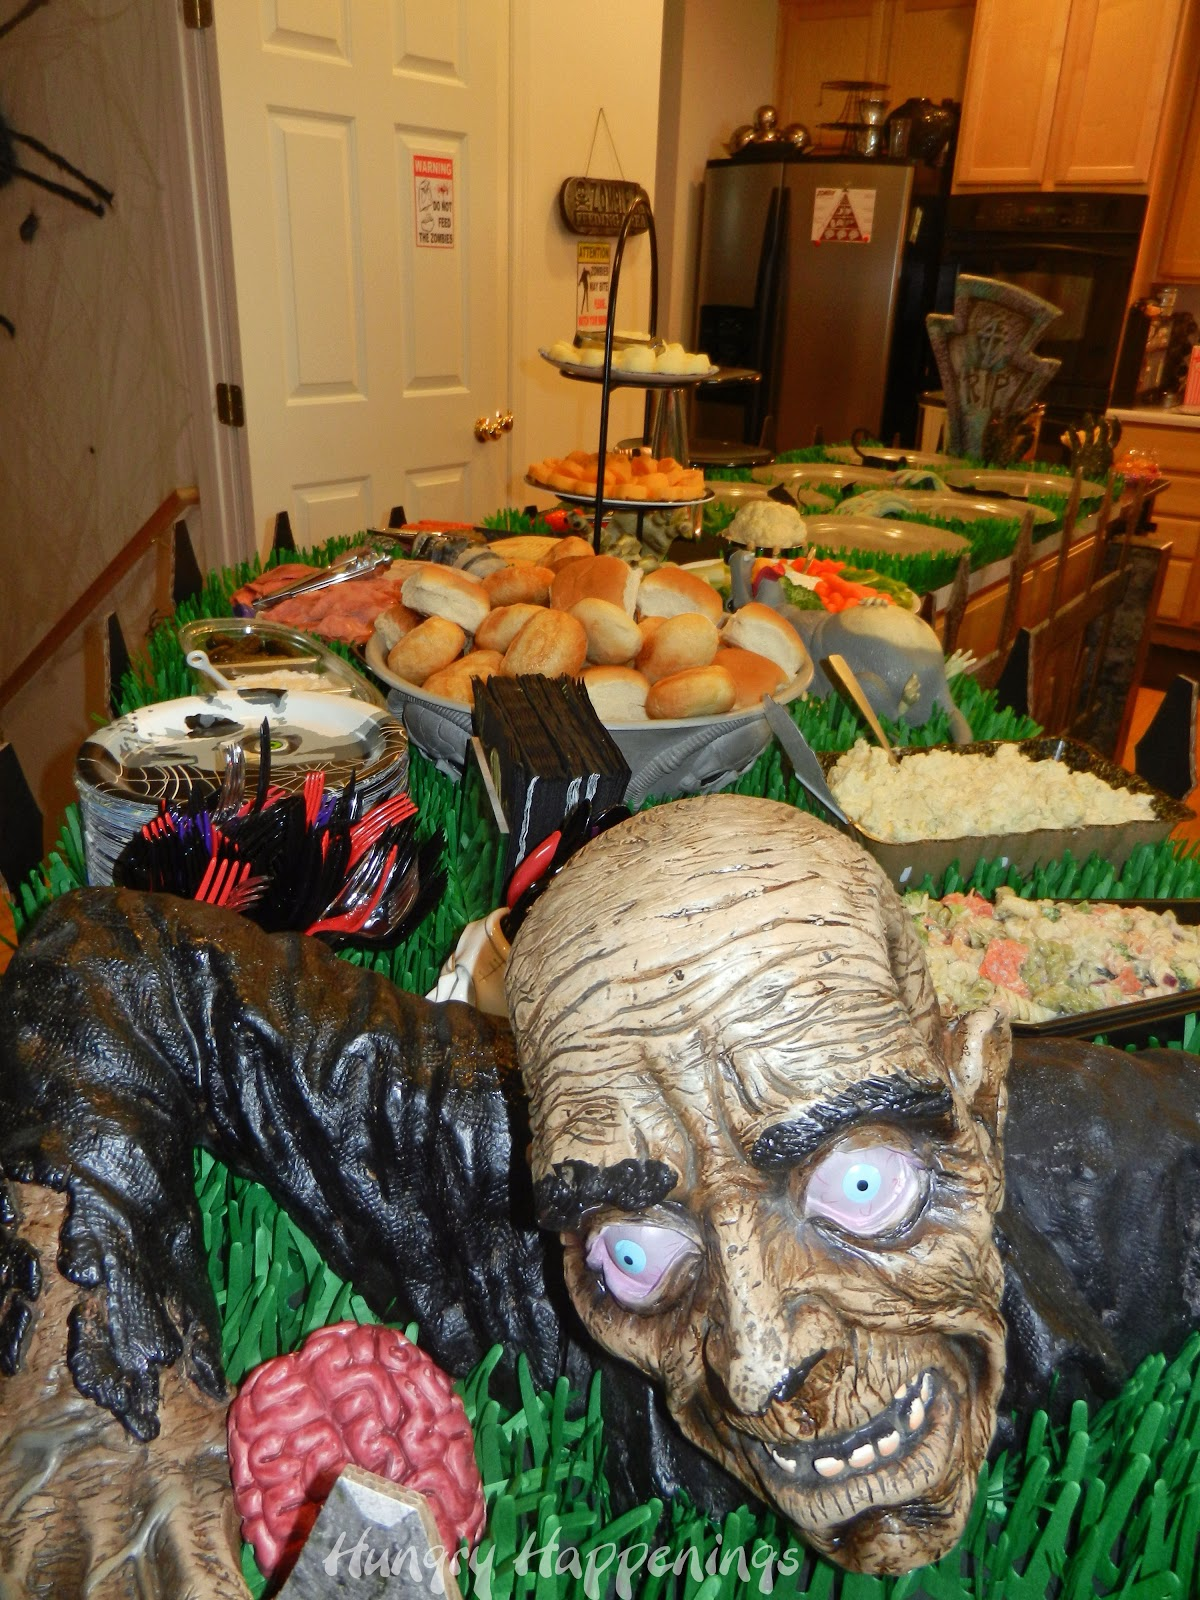 Zombie Party - Party Planning Ideas for your Zombie Themed Event